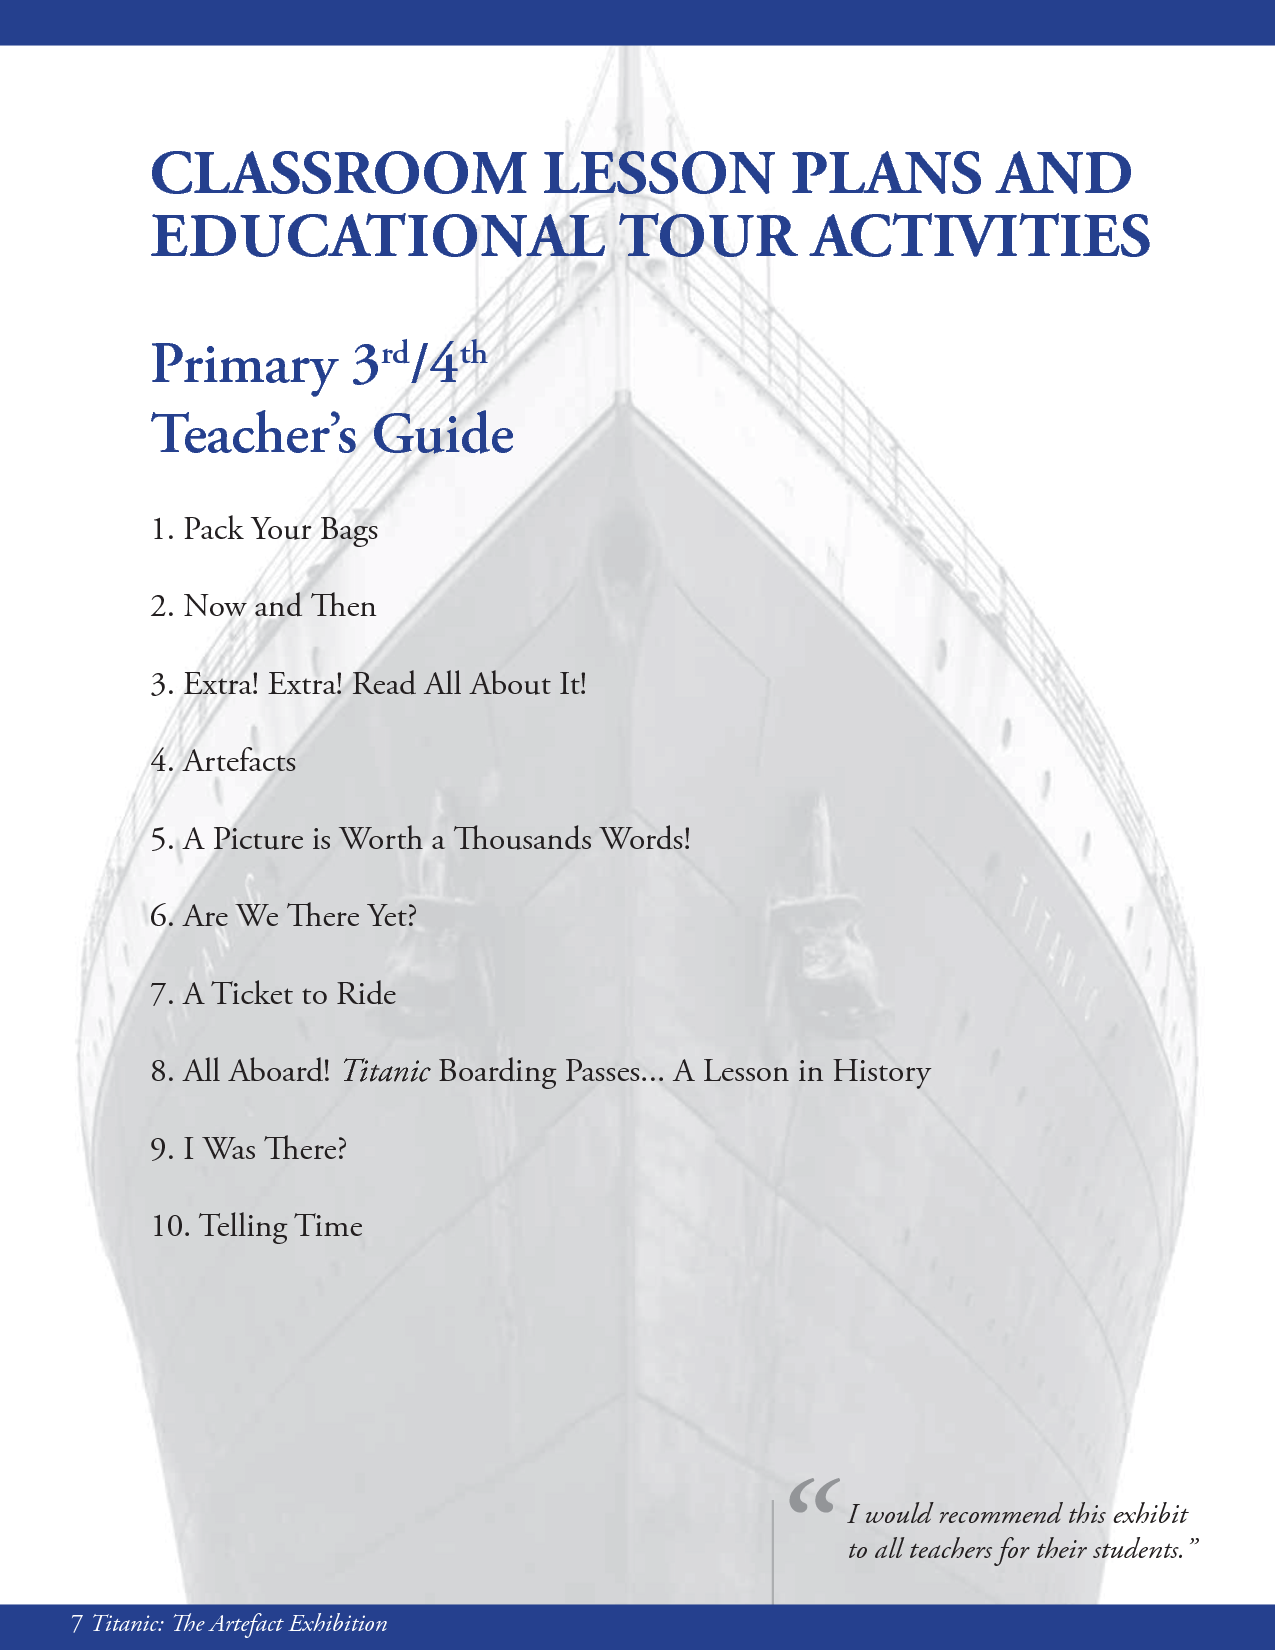 The Titanic Classroom Lesson Plans And Educational Tour